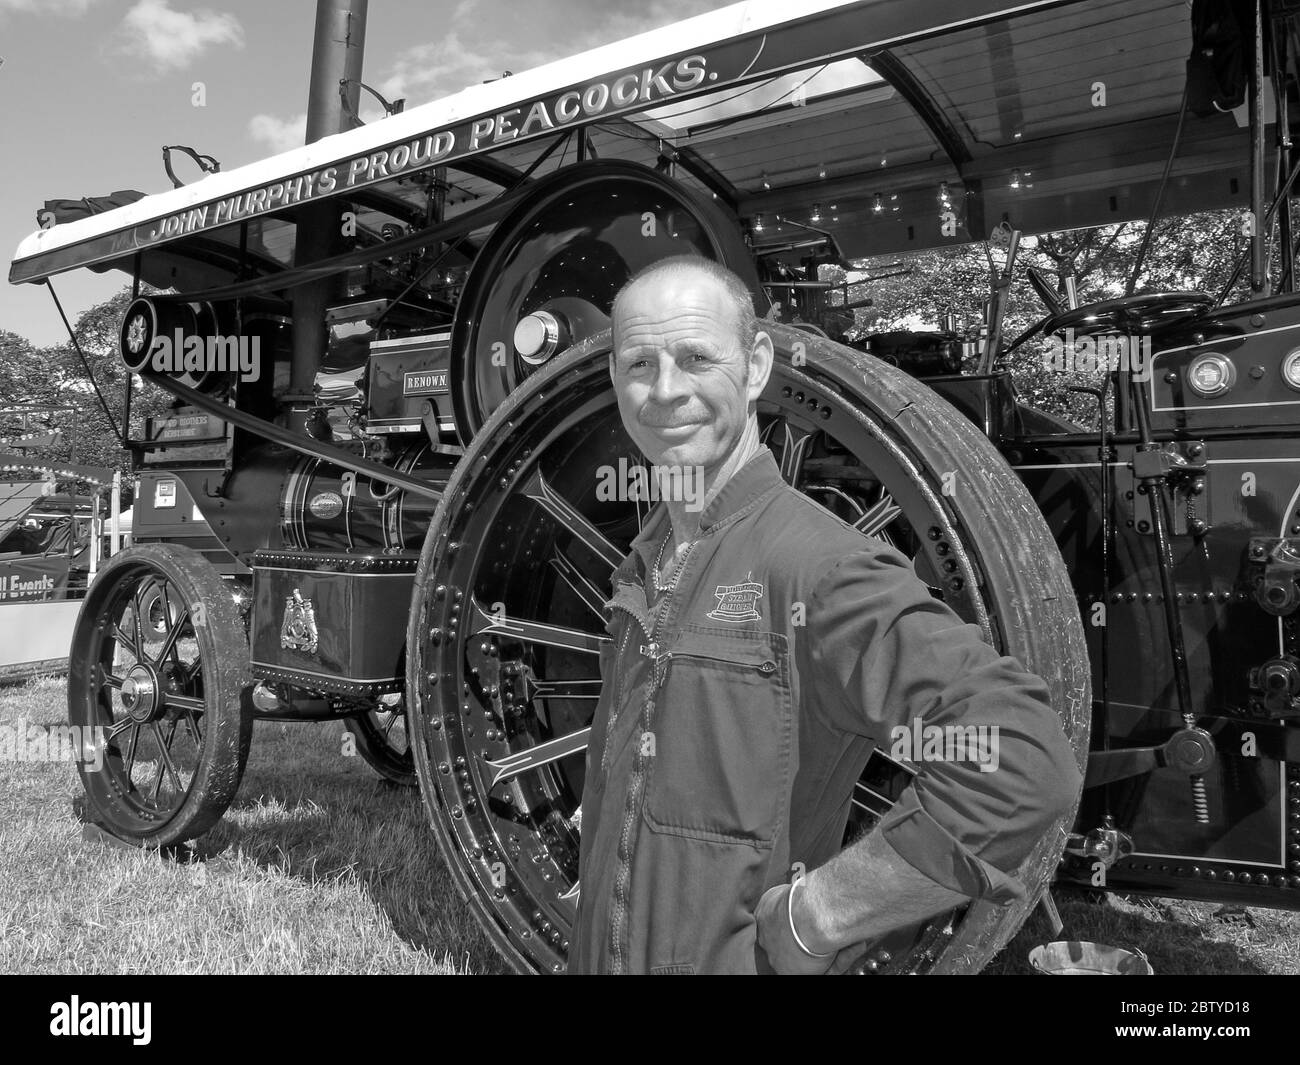 John Murphys proud Peacocks,steam traction engine (Renown) and operator, Leicestershire, England UK - Showmans Engine Stock Photo